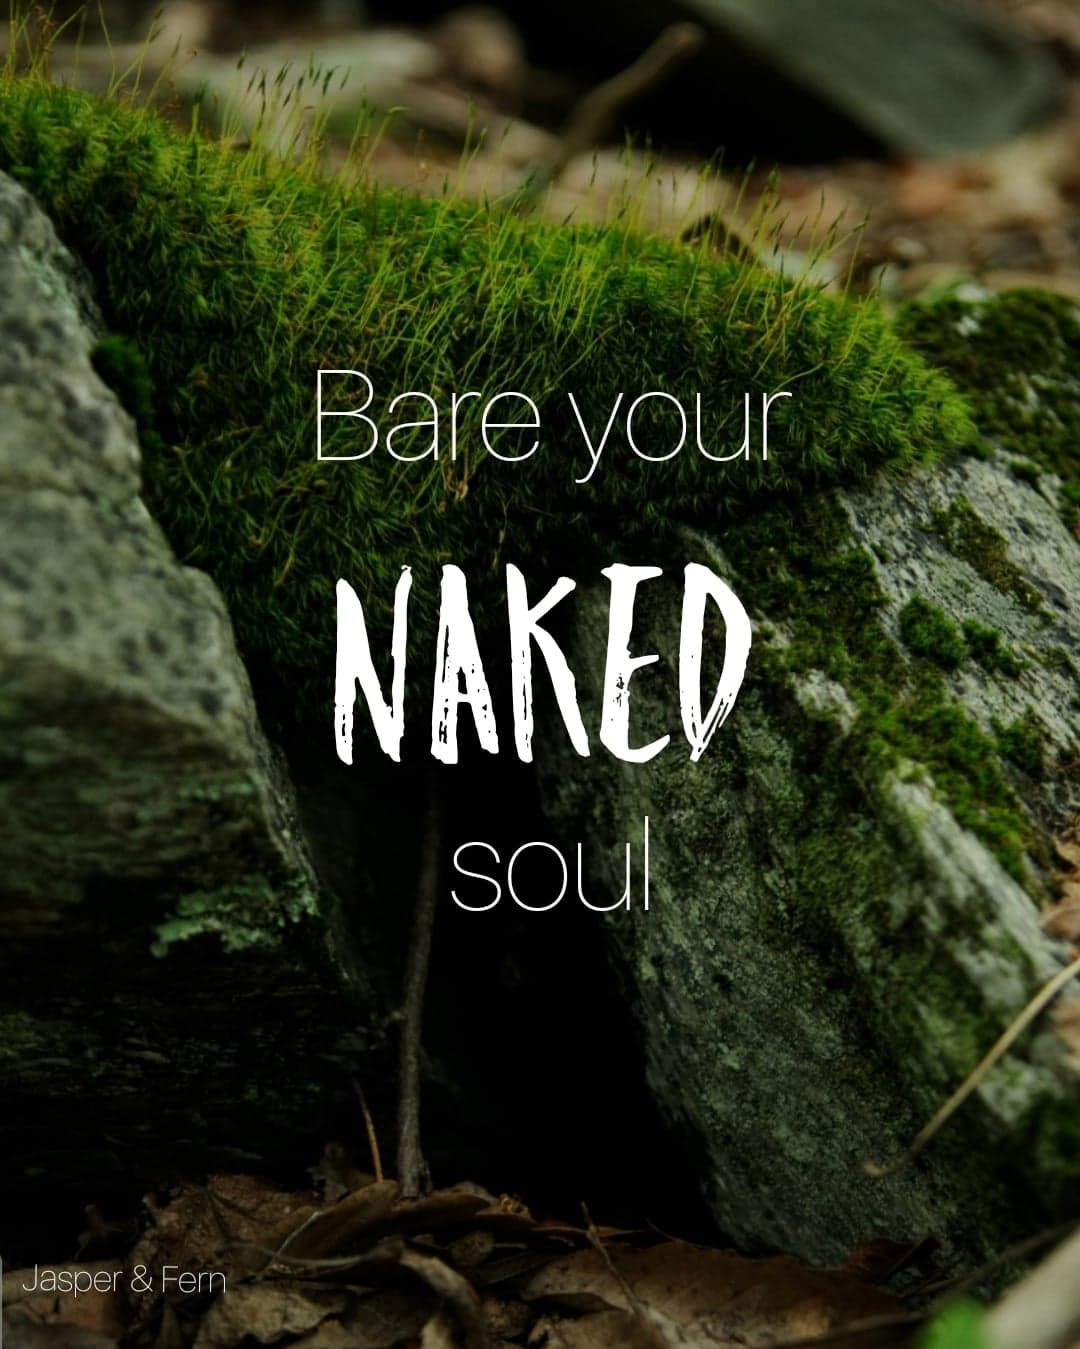 Inner Beauty | Quotes about True Beauty | Quotes about being Naked | How to be Beautiful | Embracing Beautiful | Self Value | Life lessons in self worth | Winston Salem, North Carolina | Photographers in Winston Salem | Jasper & Fern | Inspirational Quotes for women | Witchy Quotes